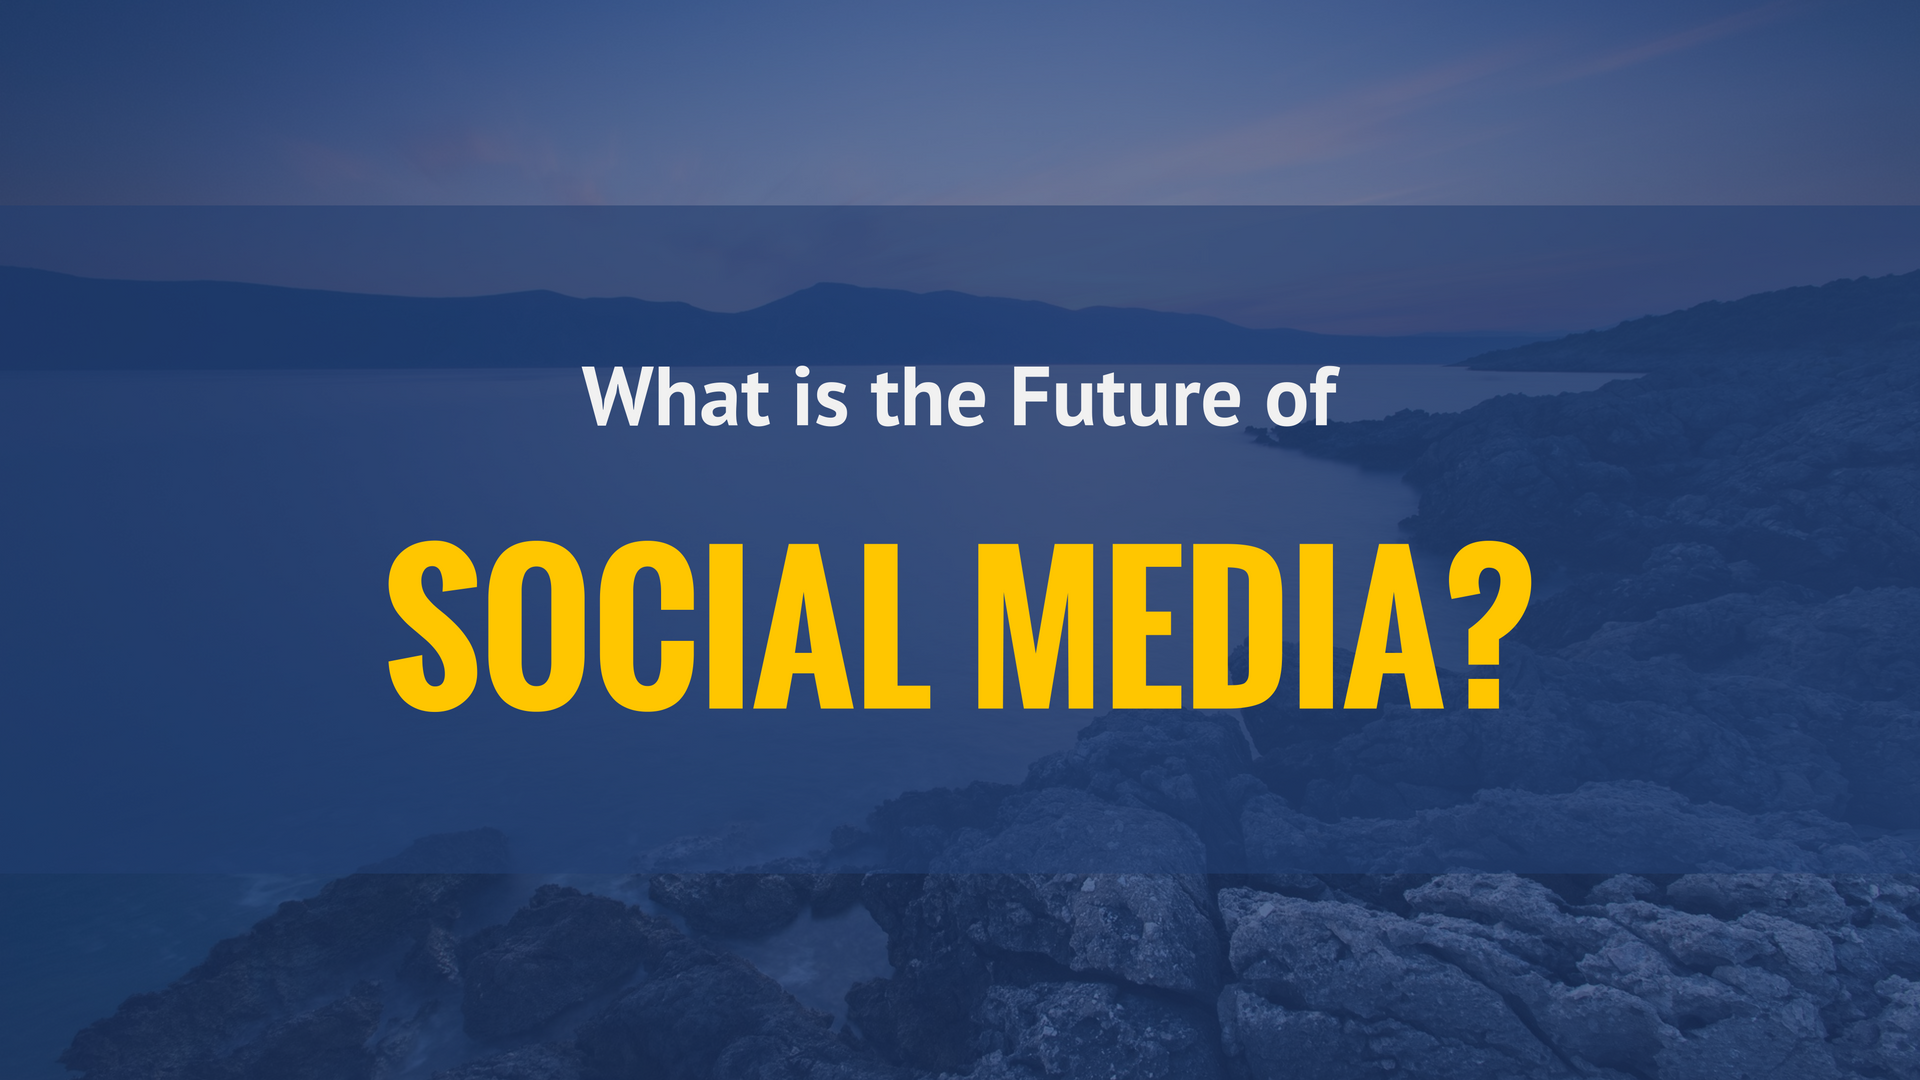 What is The Future of Social Media?